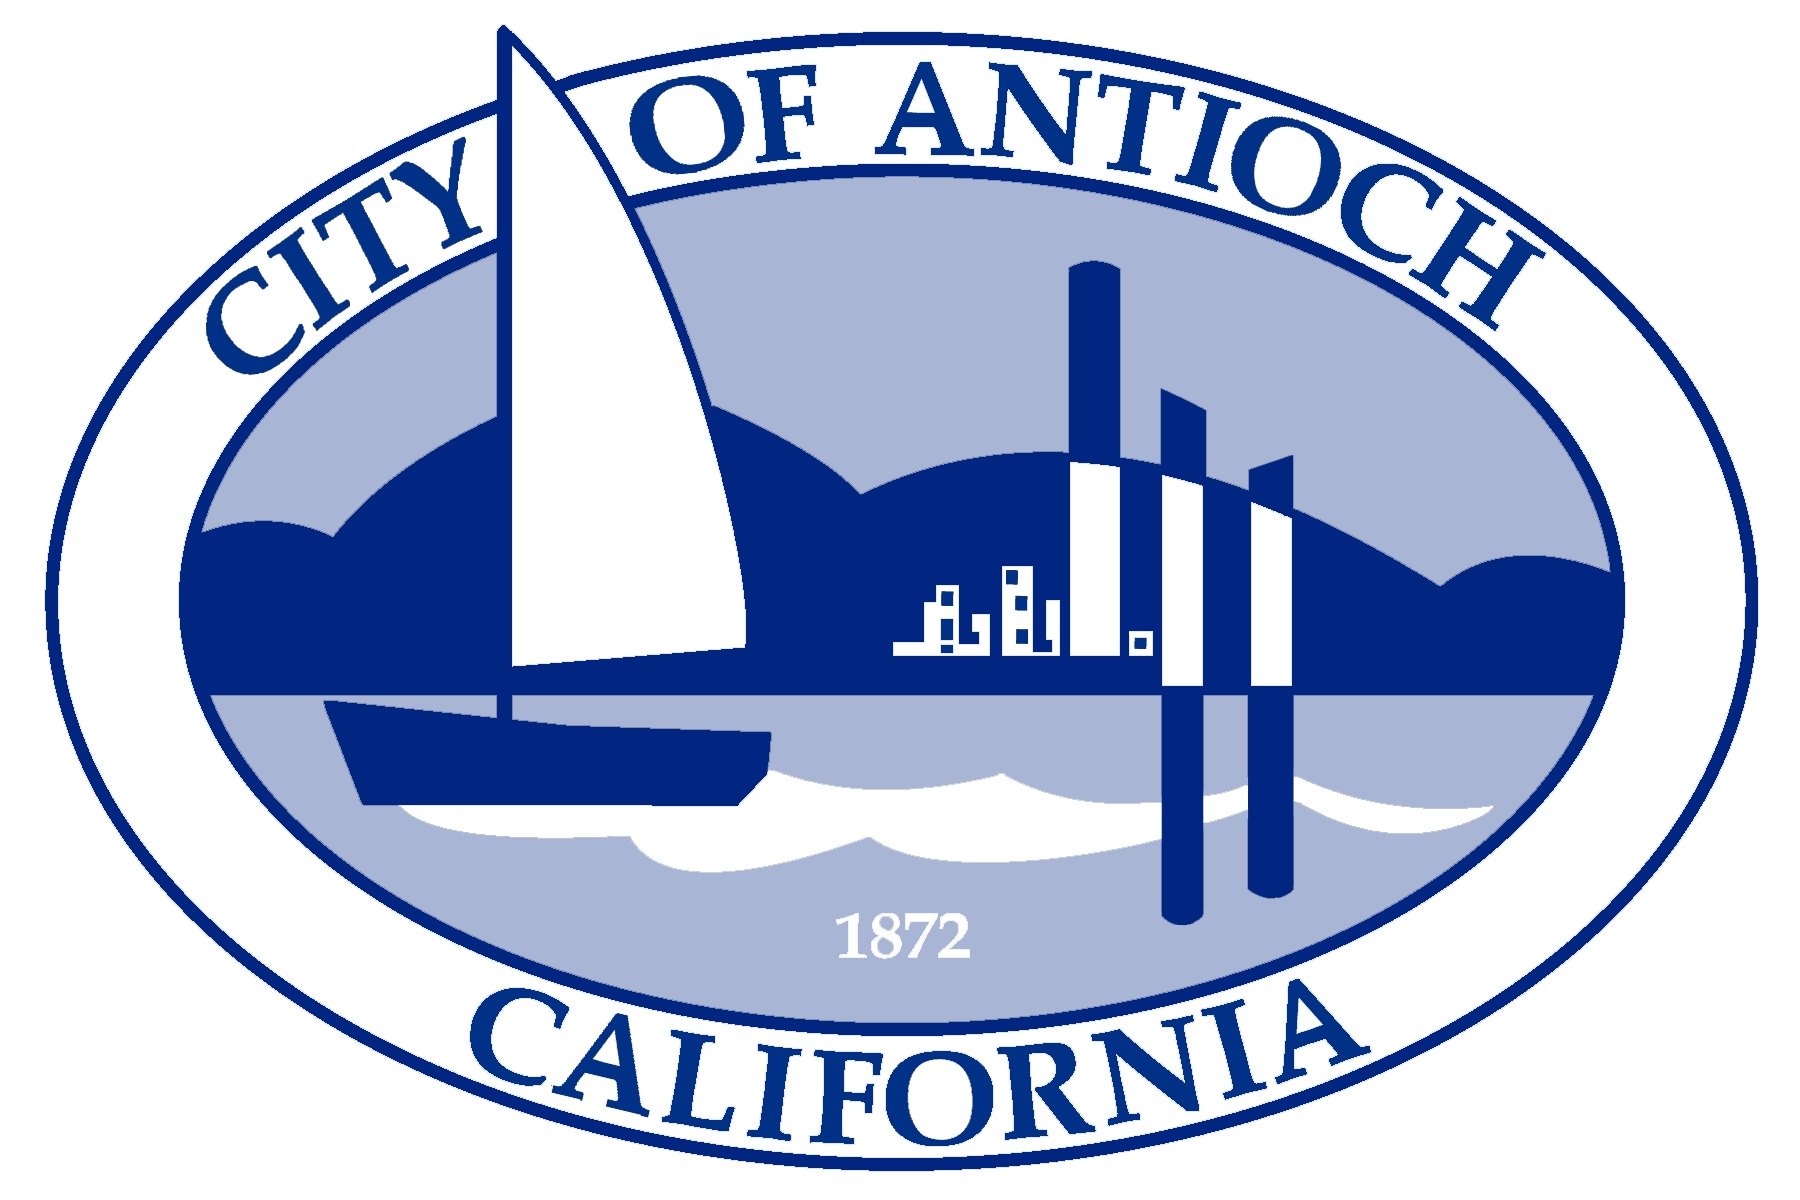 Seal_of_Antioch,_California_(old).png